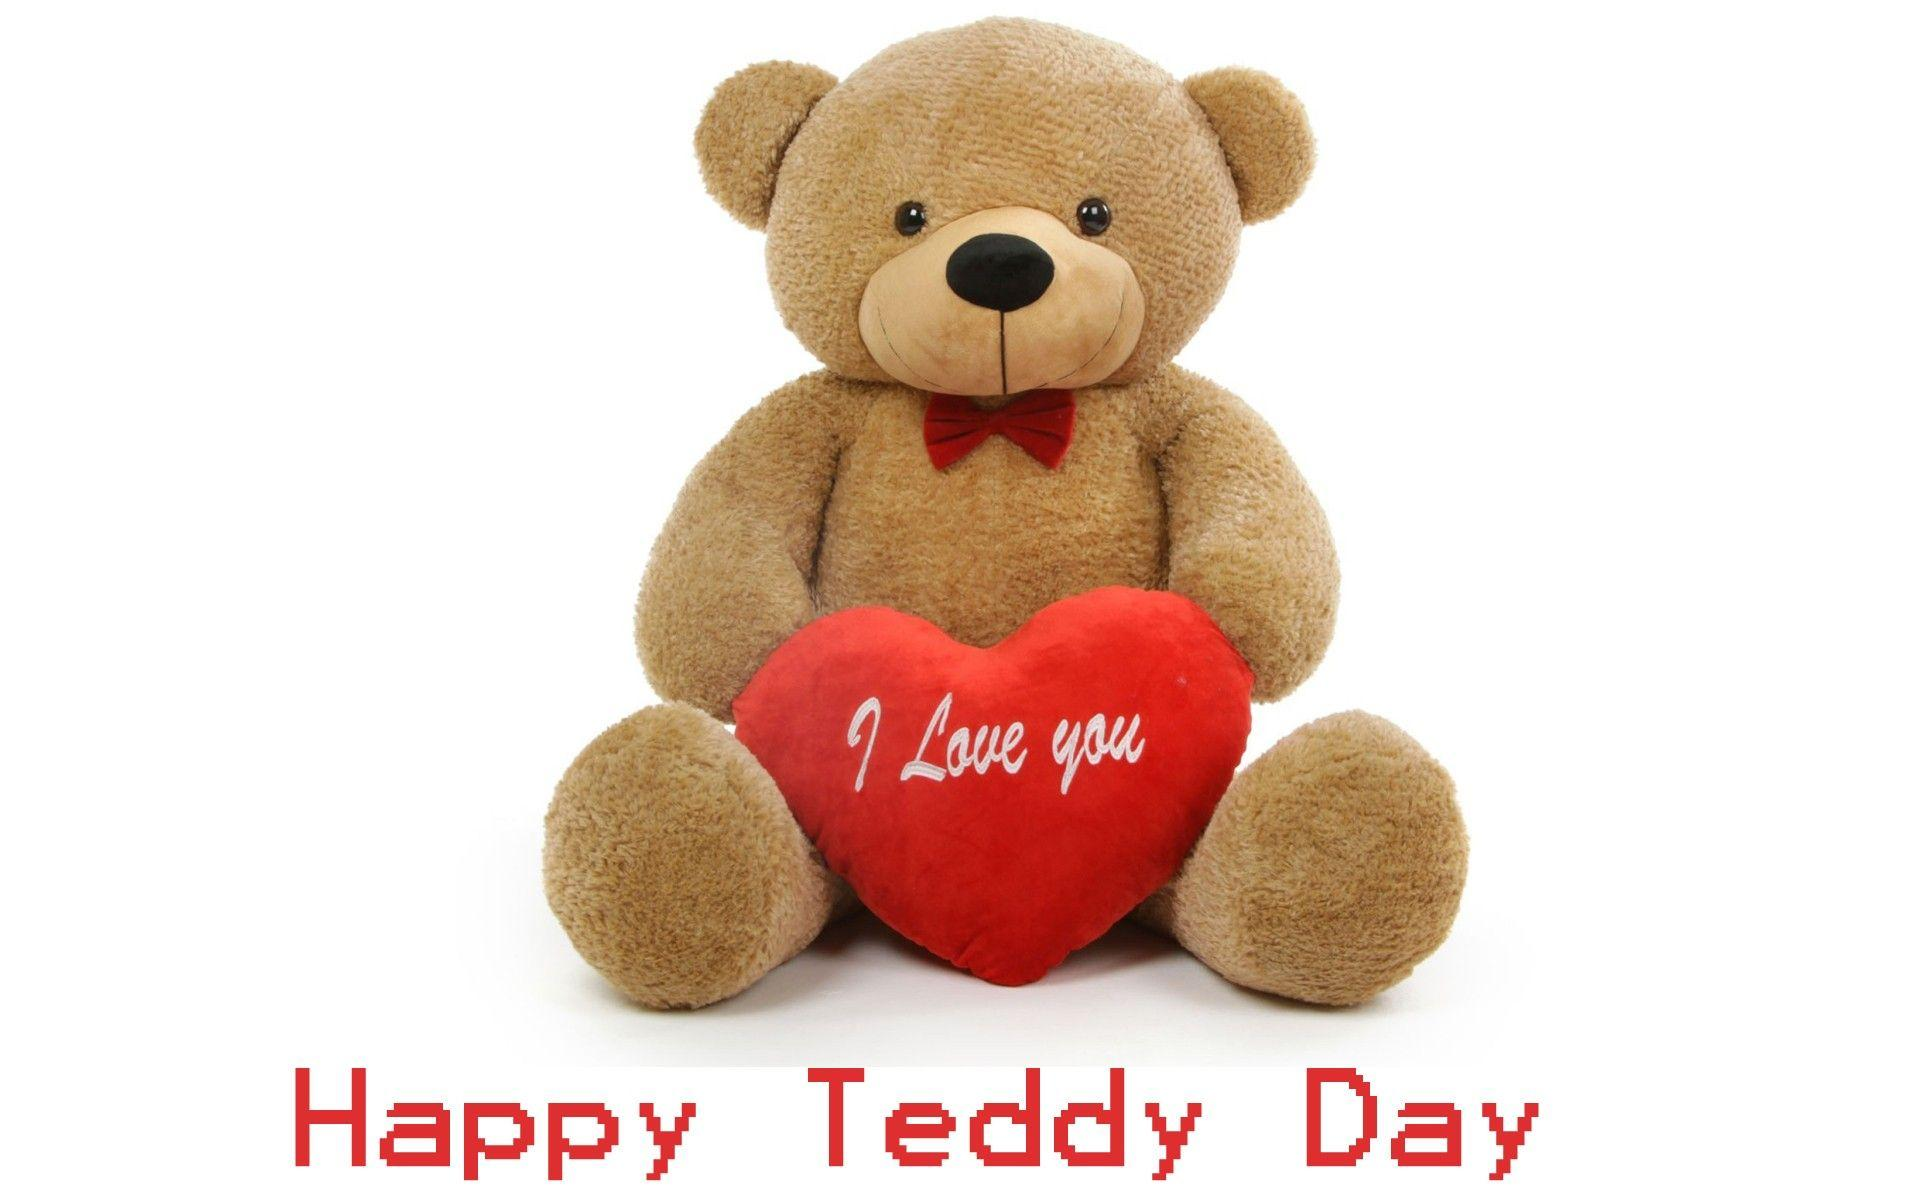 Teddy day wallpapers wallpaper cave teddy day images gif hd wallpapers 3d photos pics for altavistaventures Images